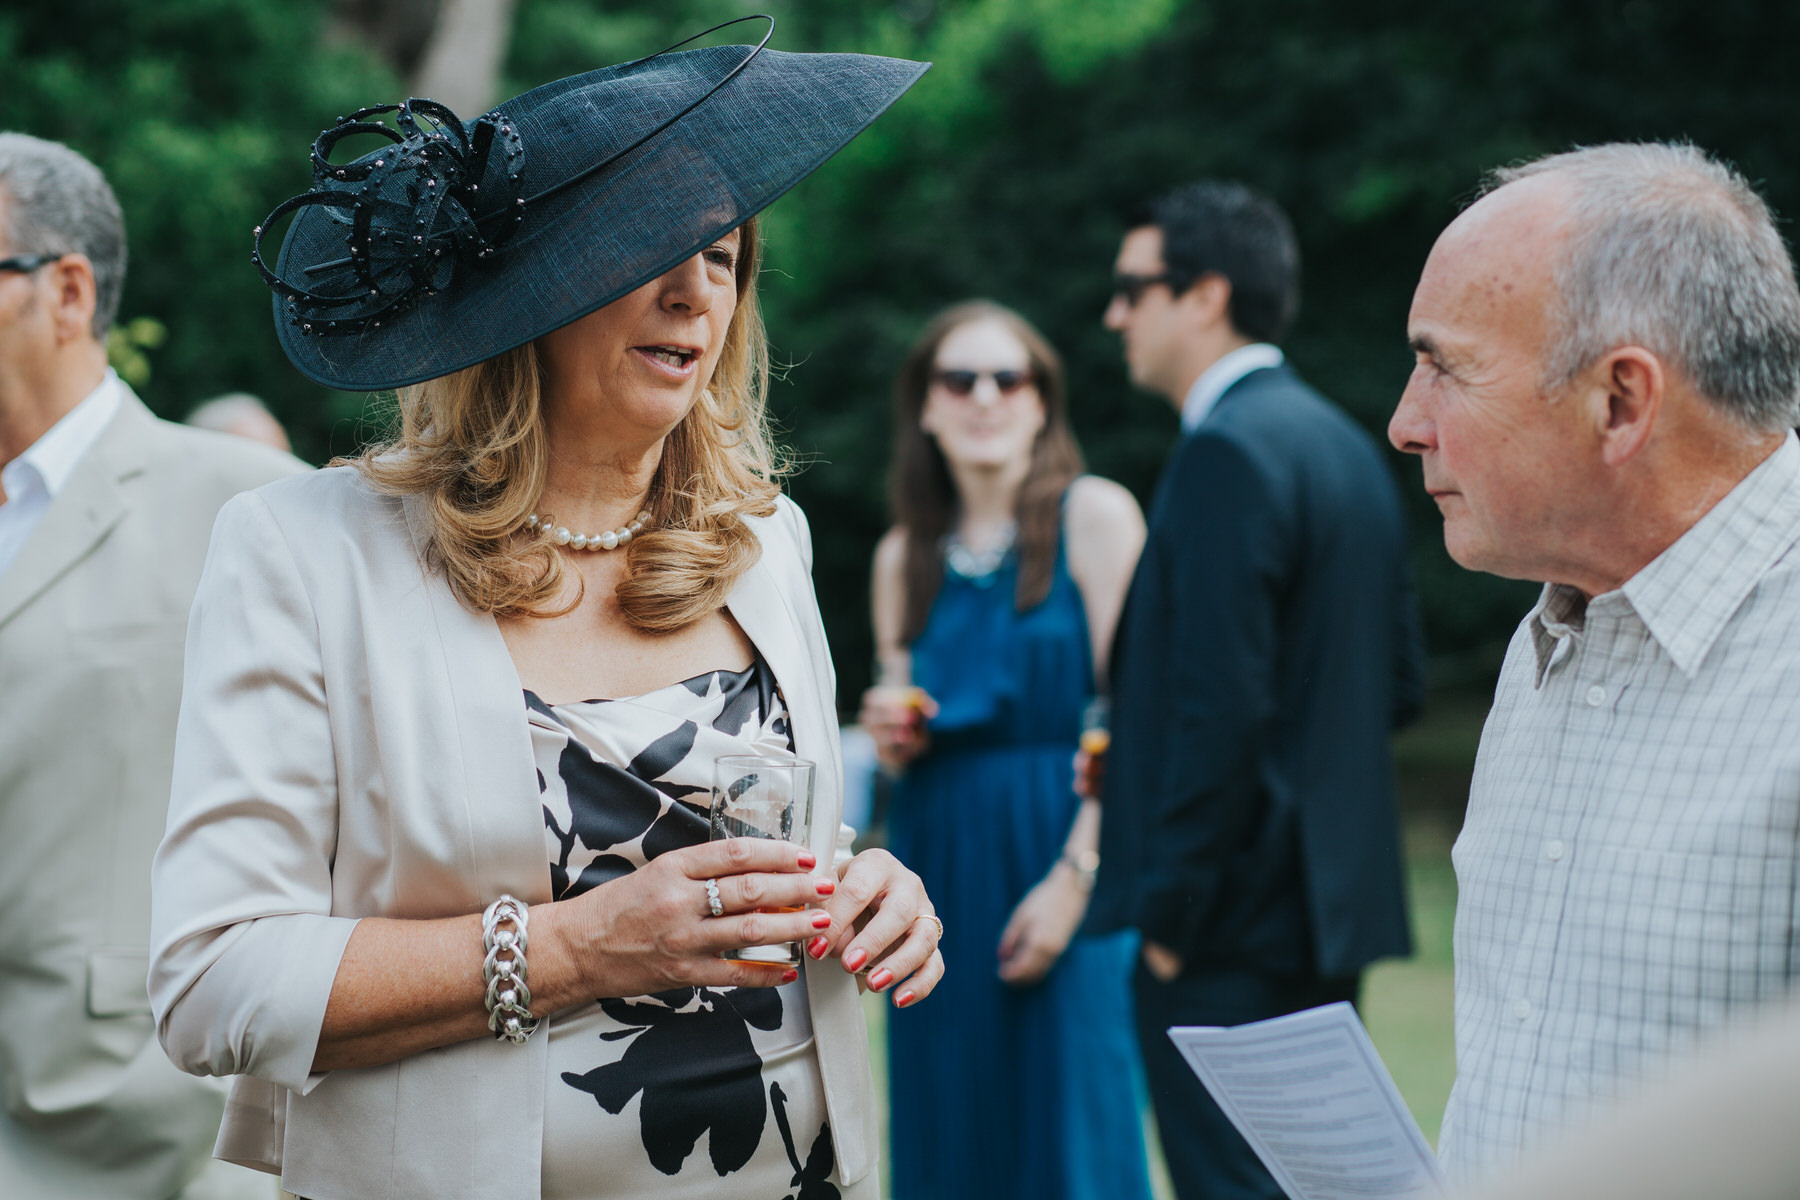 139-Pembroke Lodge South Lawn wedding drinks reception.jpg